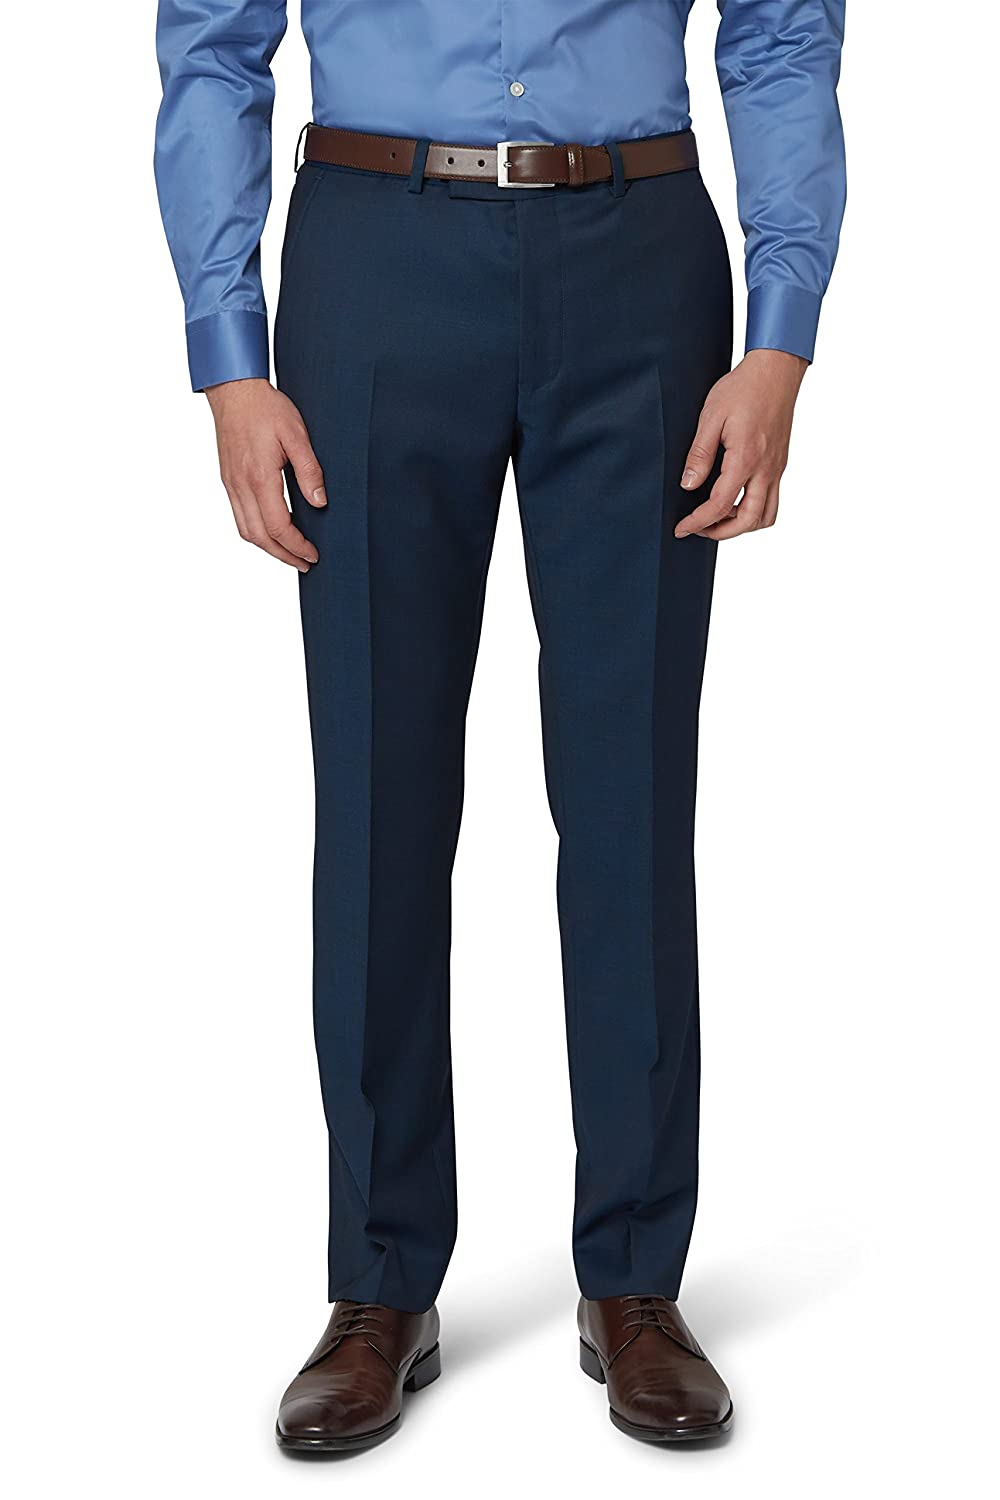 DKNY Men`s Slim Fit Teal Twill Suit Trousers